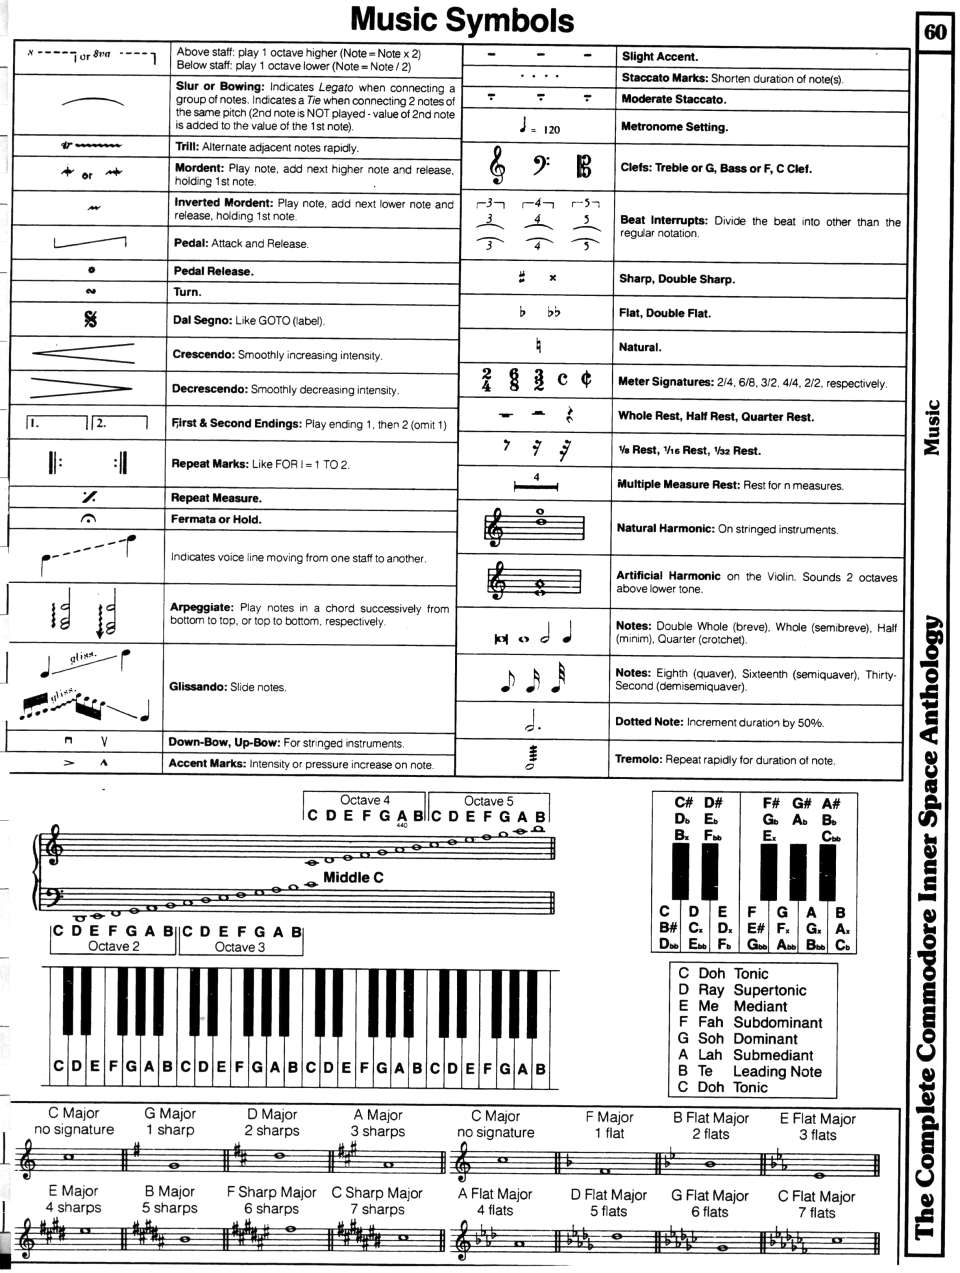 [960�1273 Music Section: Music Symbols]